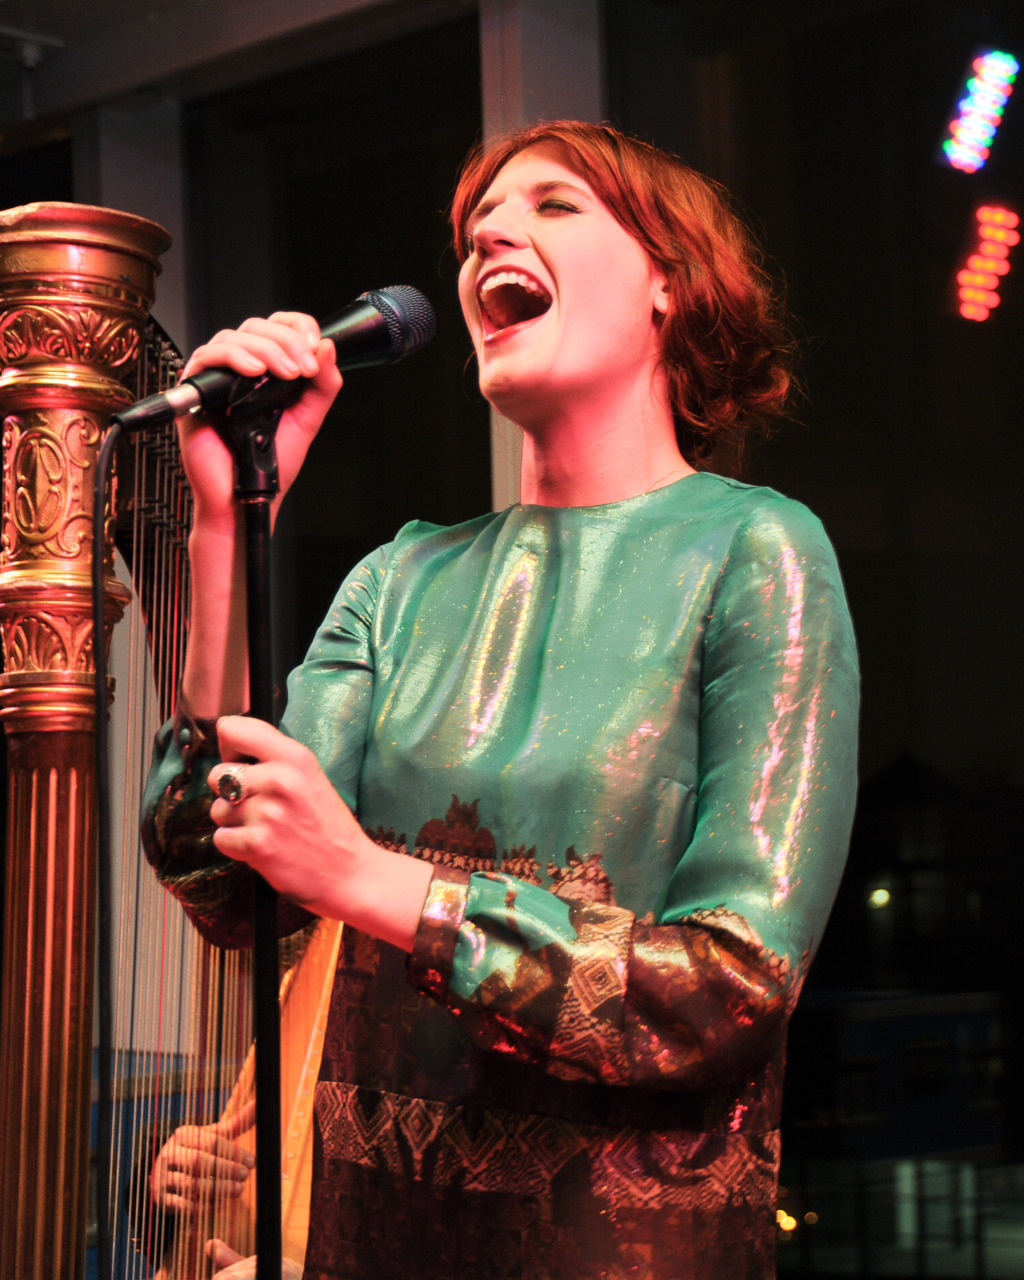 Florence + The Machine perform at The Standard, New York last night. More here.